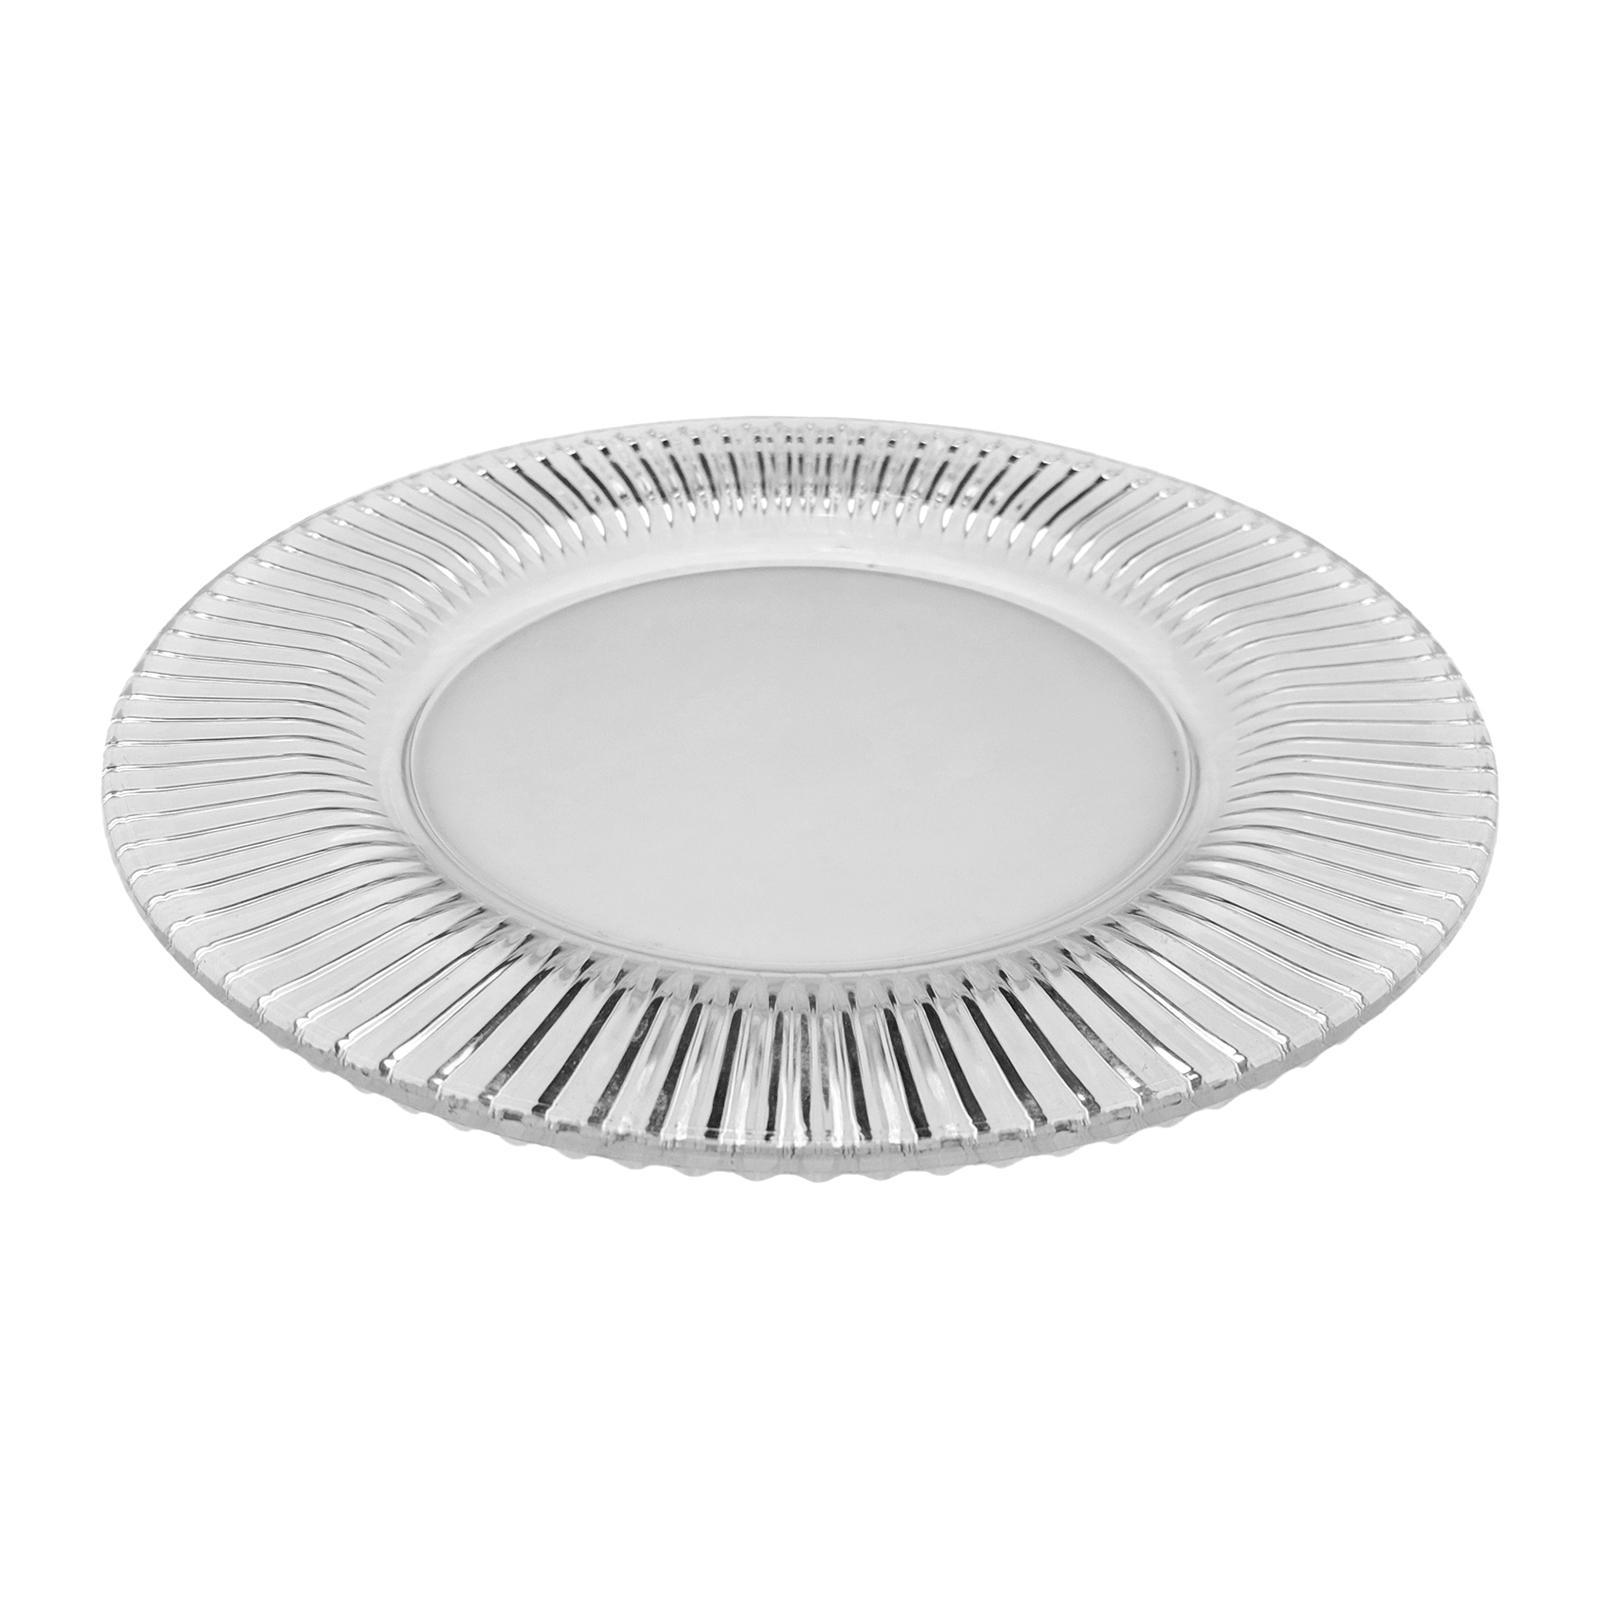 Soga Frosted Glass Plate 23 CM